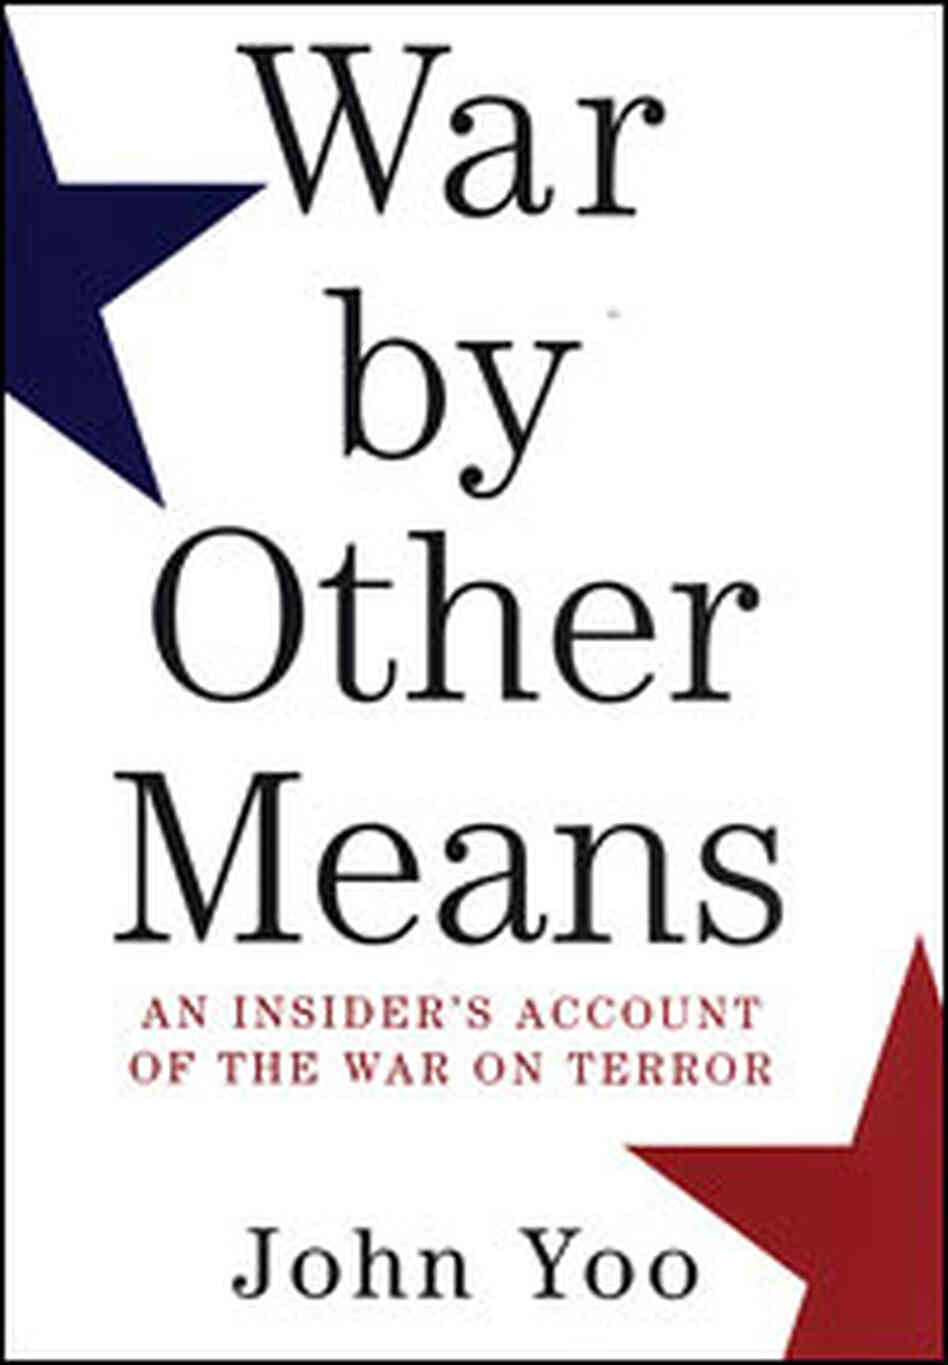 'War by Other Means' by John Yoo